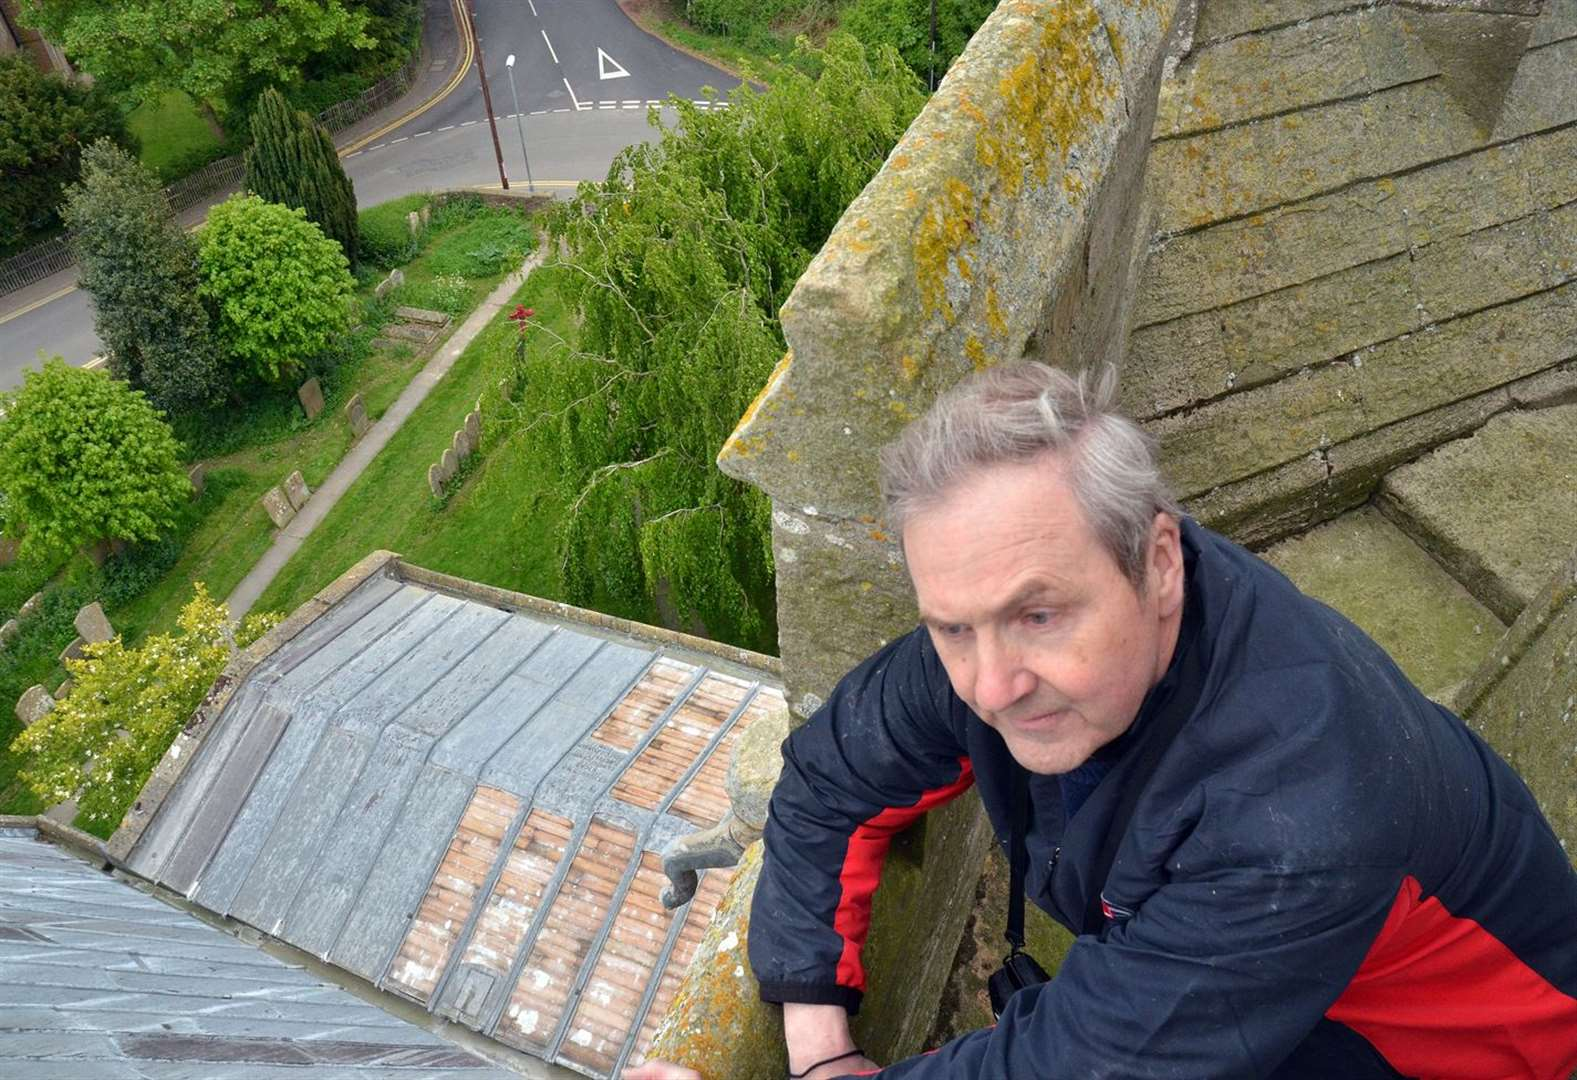 Vicar sad for people who have life-long association with church hit by lead thieves